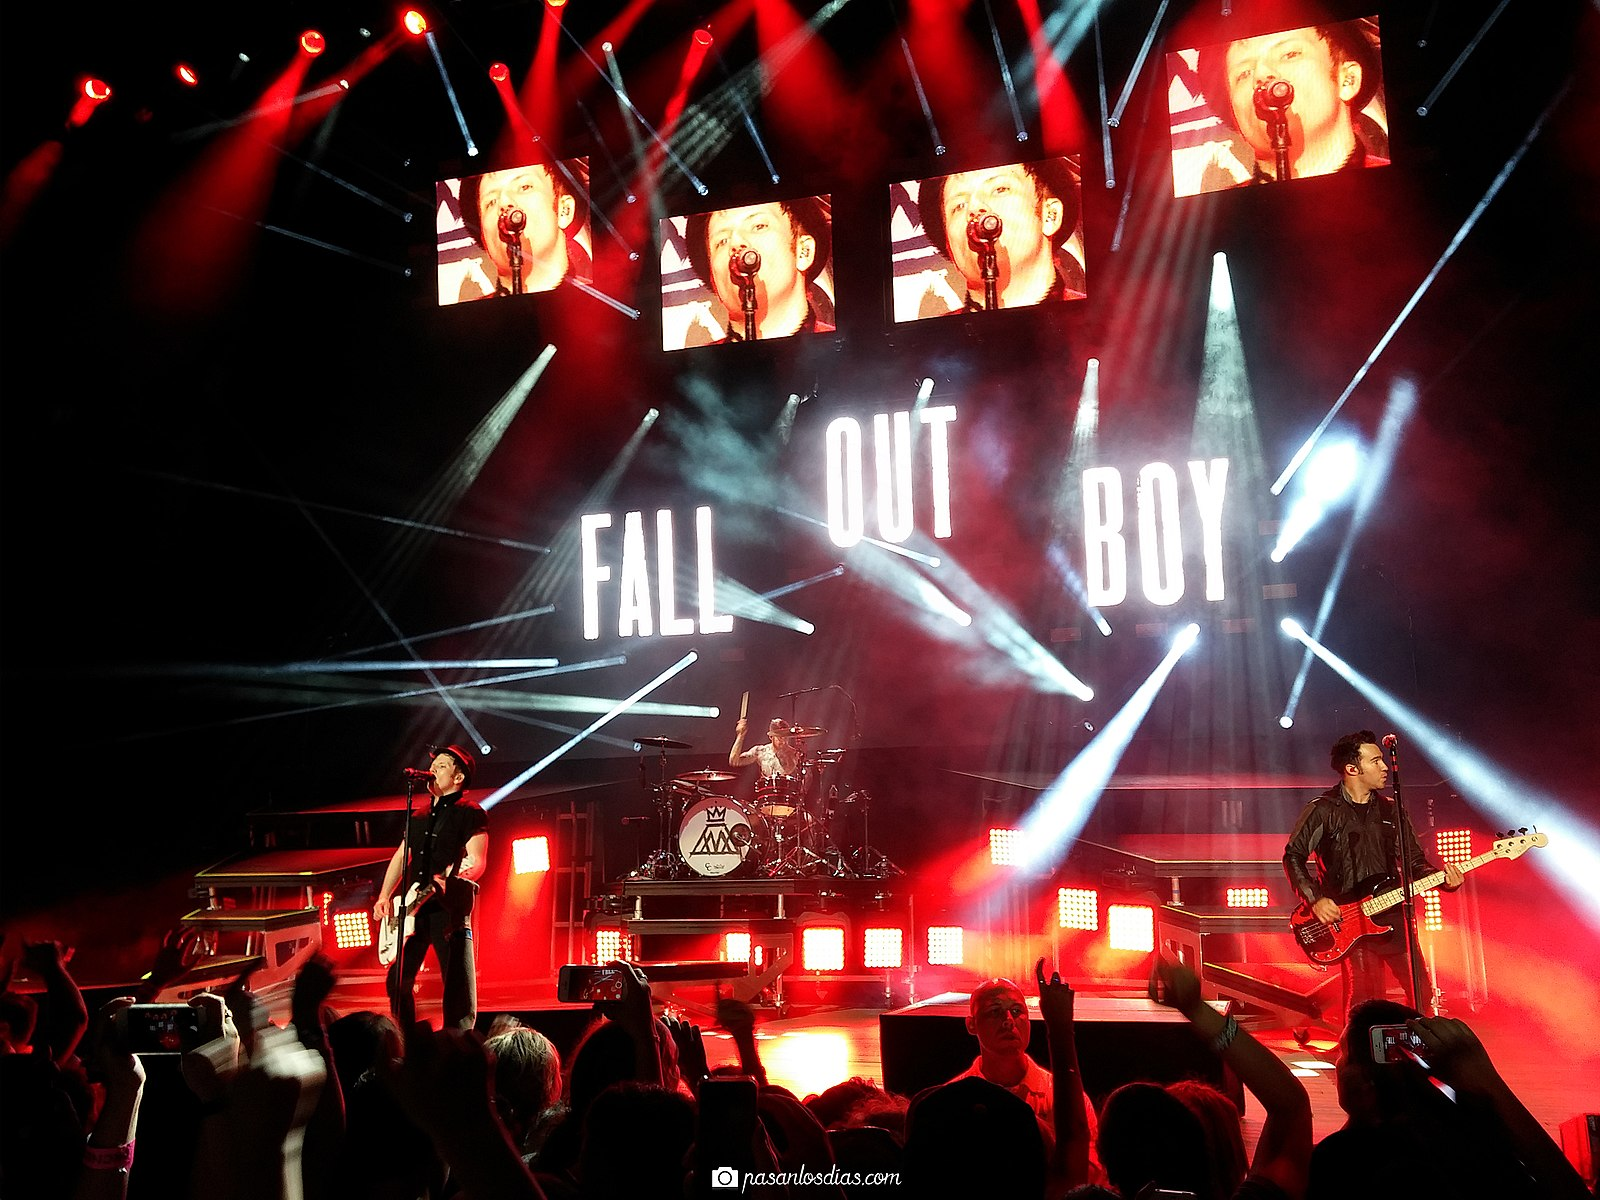 Fall Out Boy Mania Wallpaper What The Happened To Fall Out Boy A Retrospective